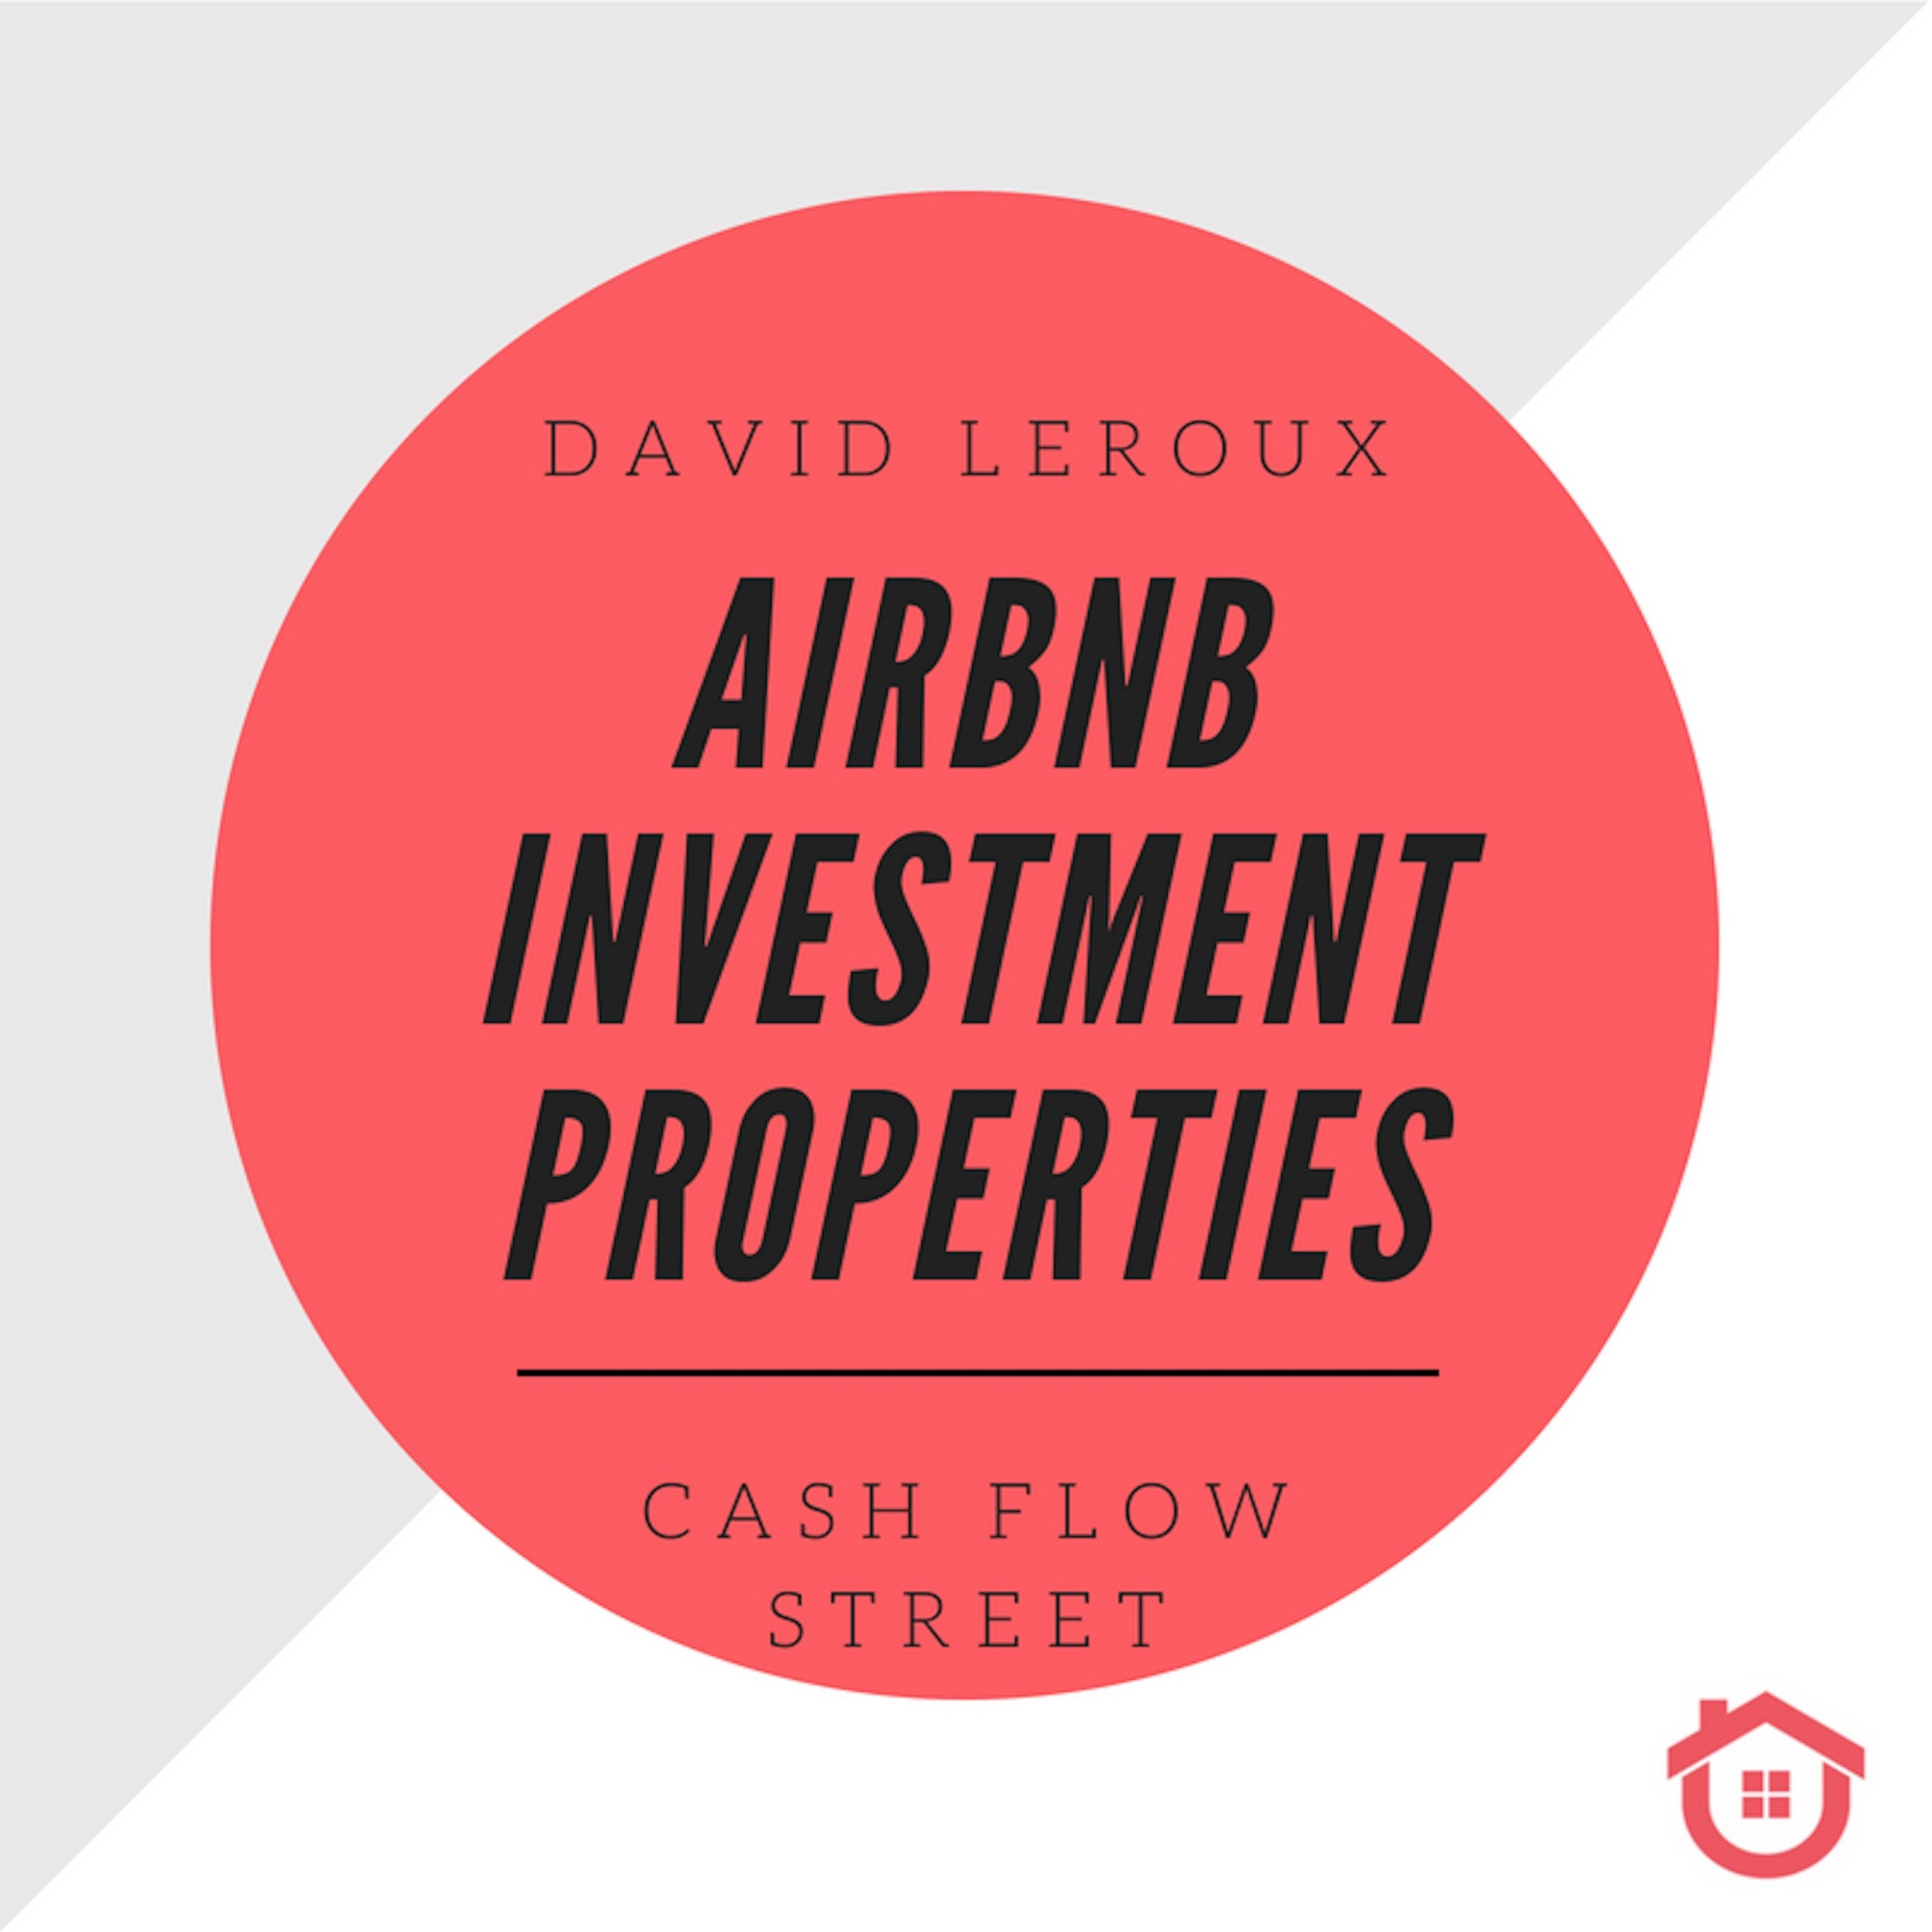 Airbnb Investment Properties Podcast - Podcast – Podtail